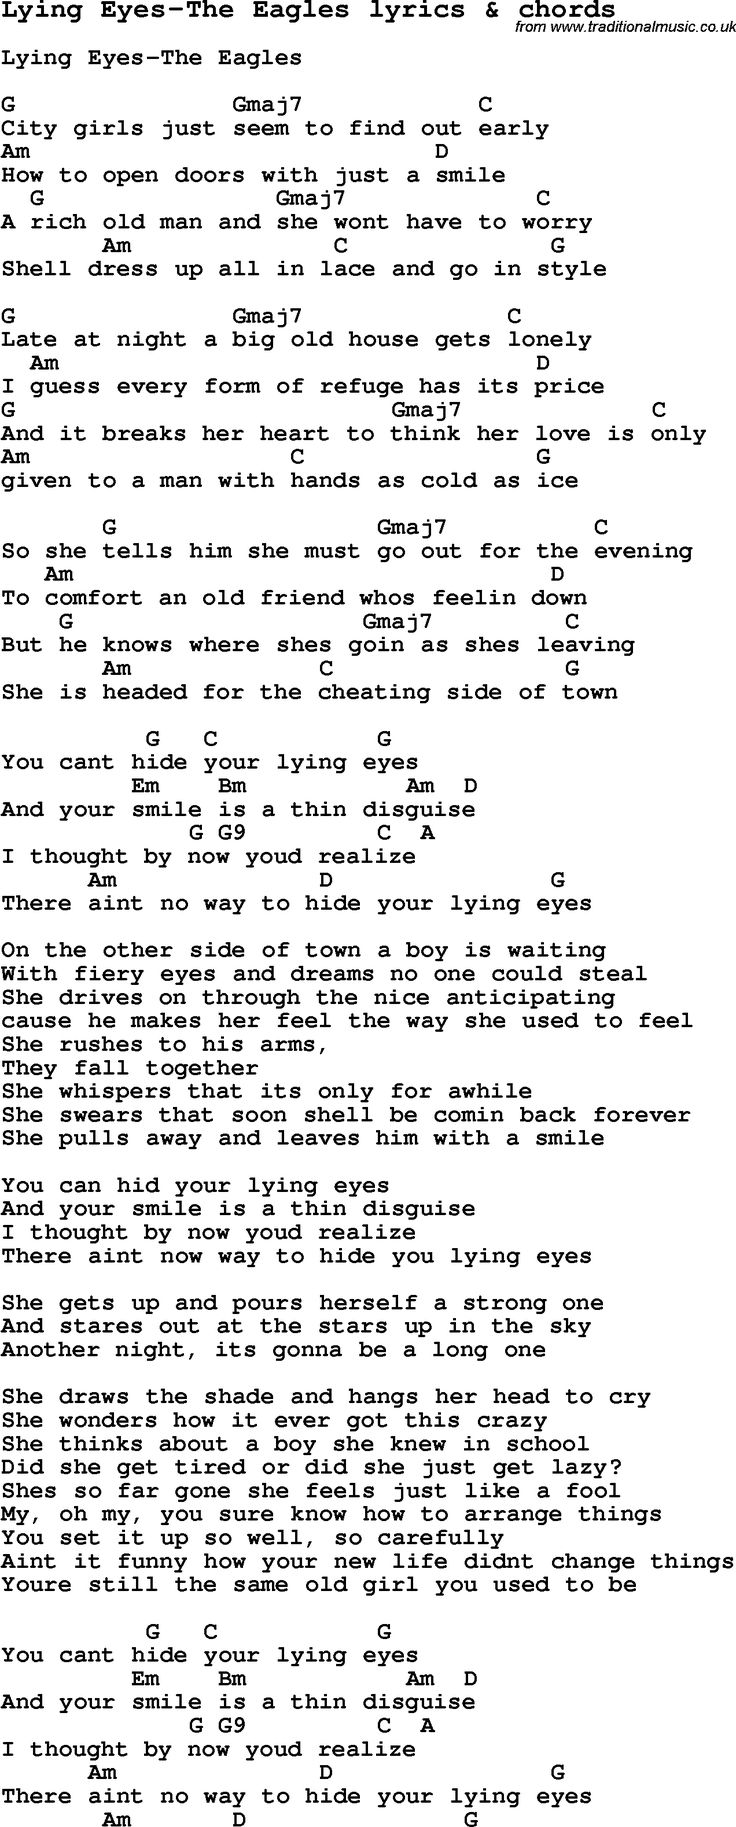 603 best sheet music images on pinterest guitar tabs lyrics and love song lyrics for lying eyes the eagles with chords for ukulele guitar hexwebz Images